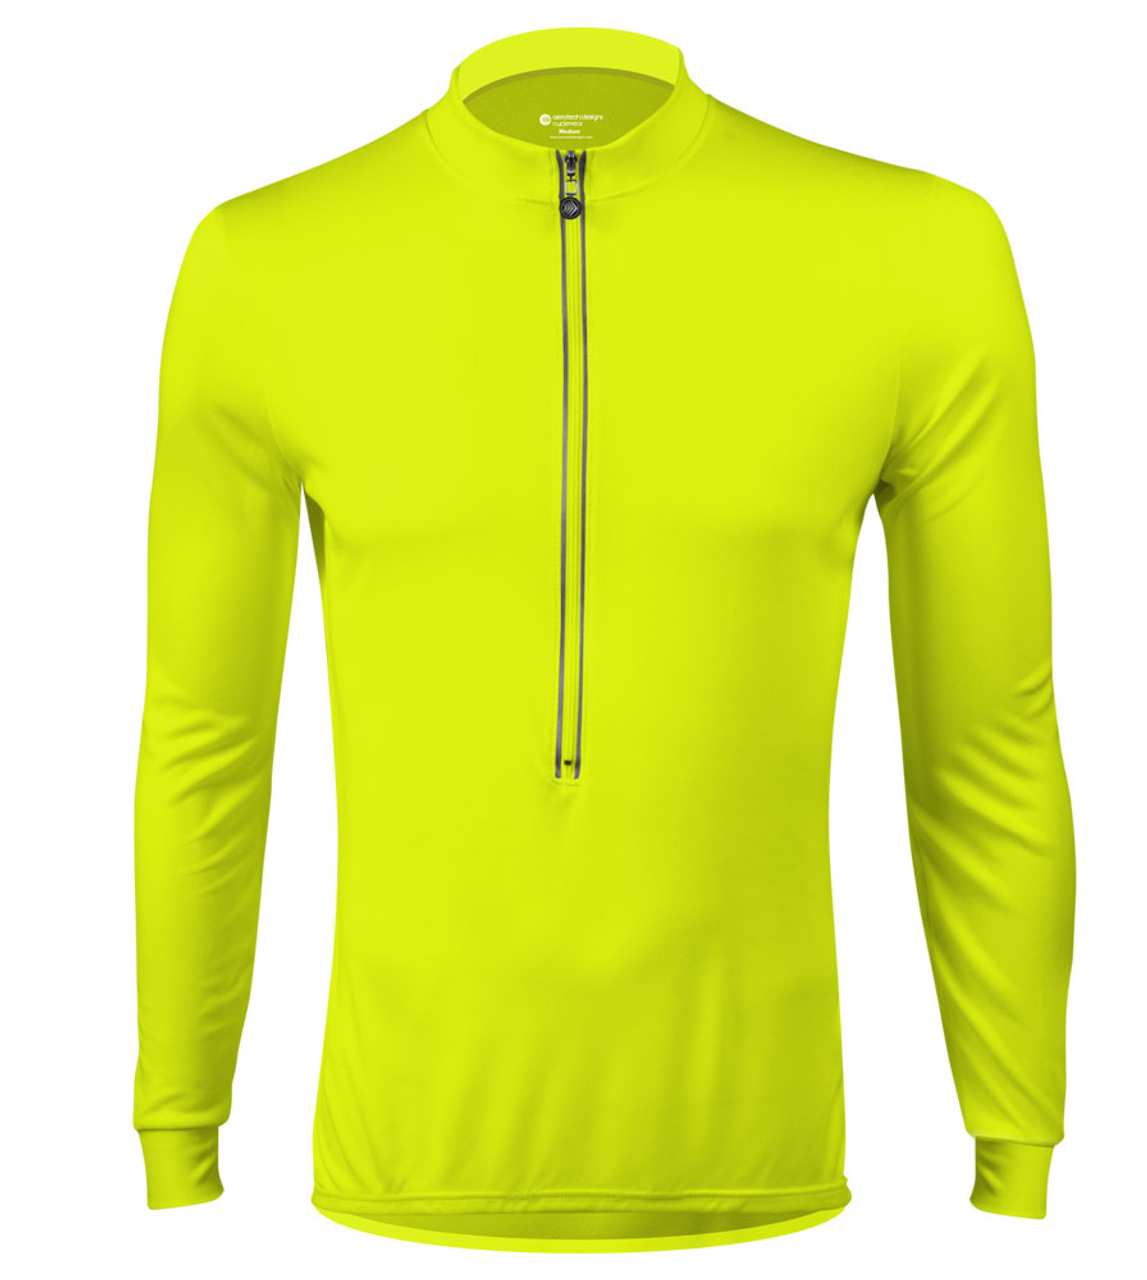 Aero Tech Long Sleeve Cycling Jersey High Visibility Safety Yellow Front  View ab3422655